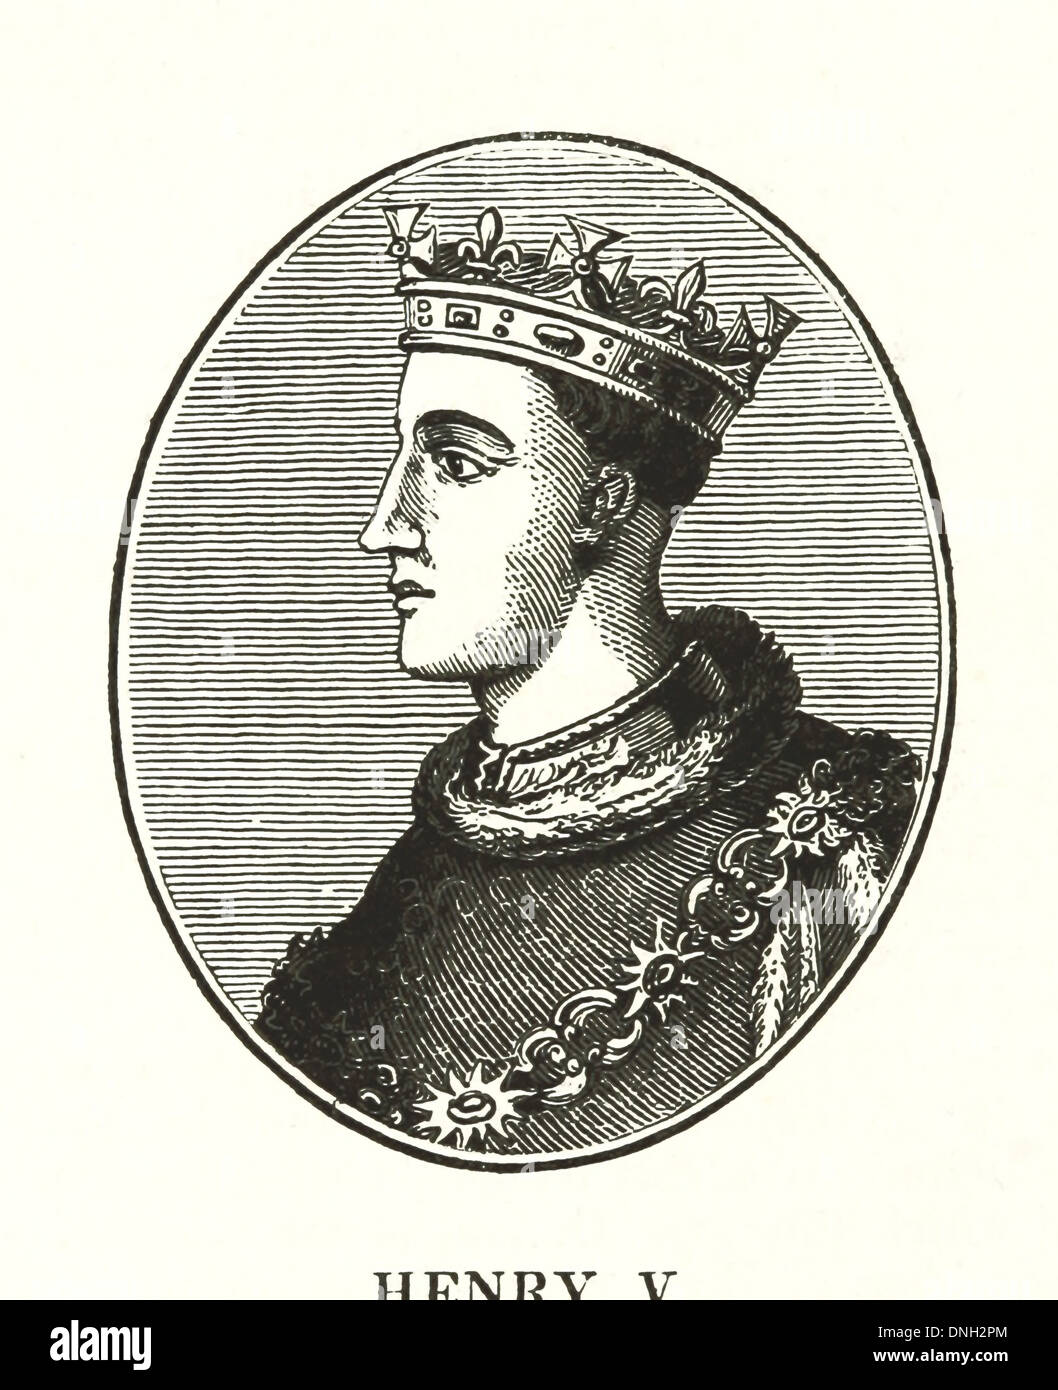 Henry V (16 September 1386 – 31 August 1422) - King of England from 1413 until his death - Stock Image